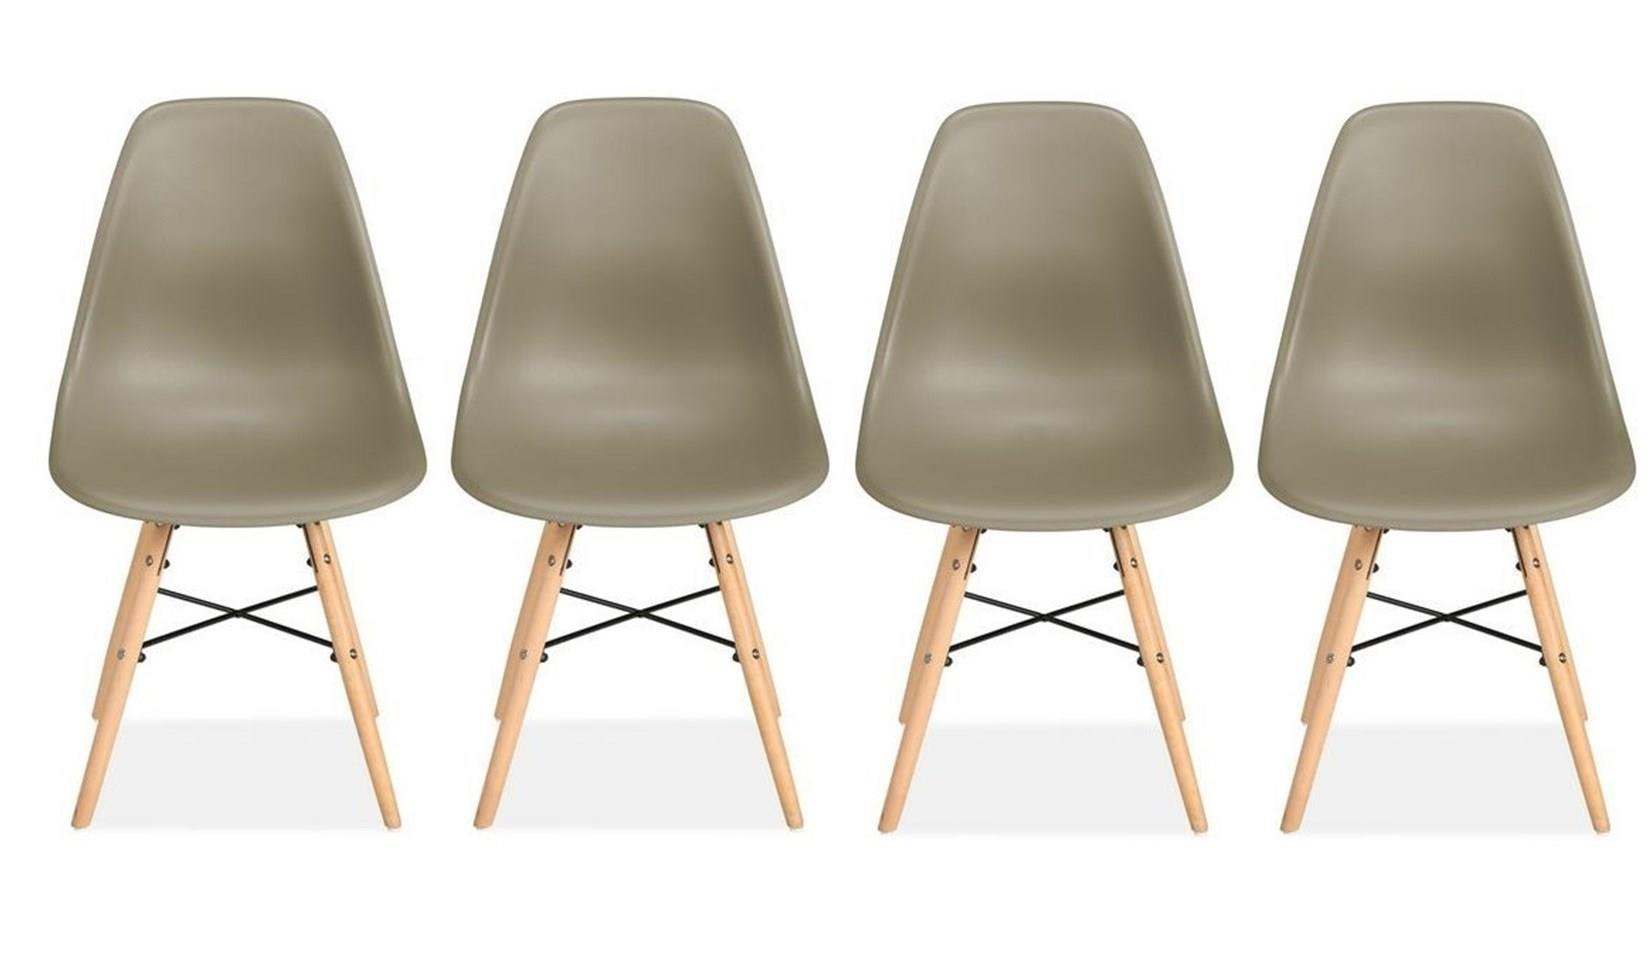 Birlea Hex 4 Putty Grey Dining Chair Scandinavian Modern Retro Design Pair Wood